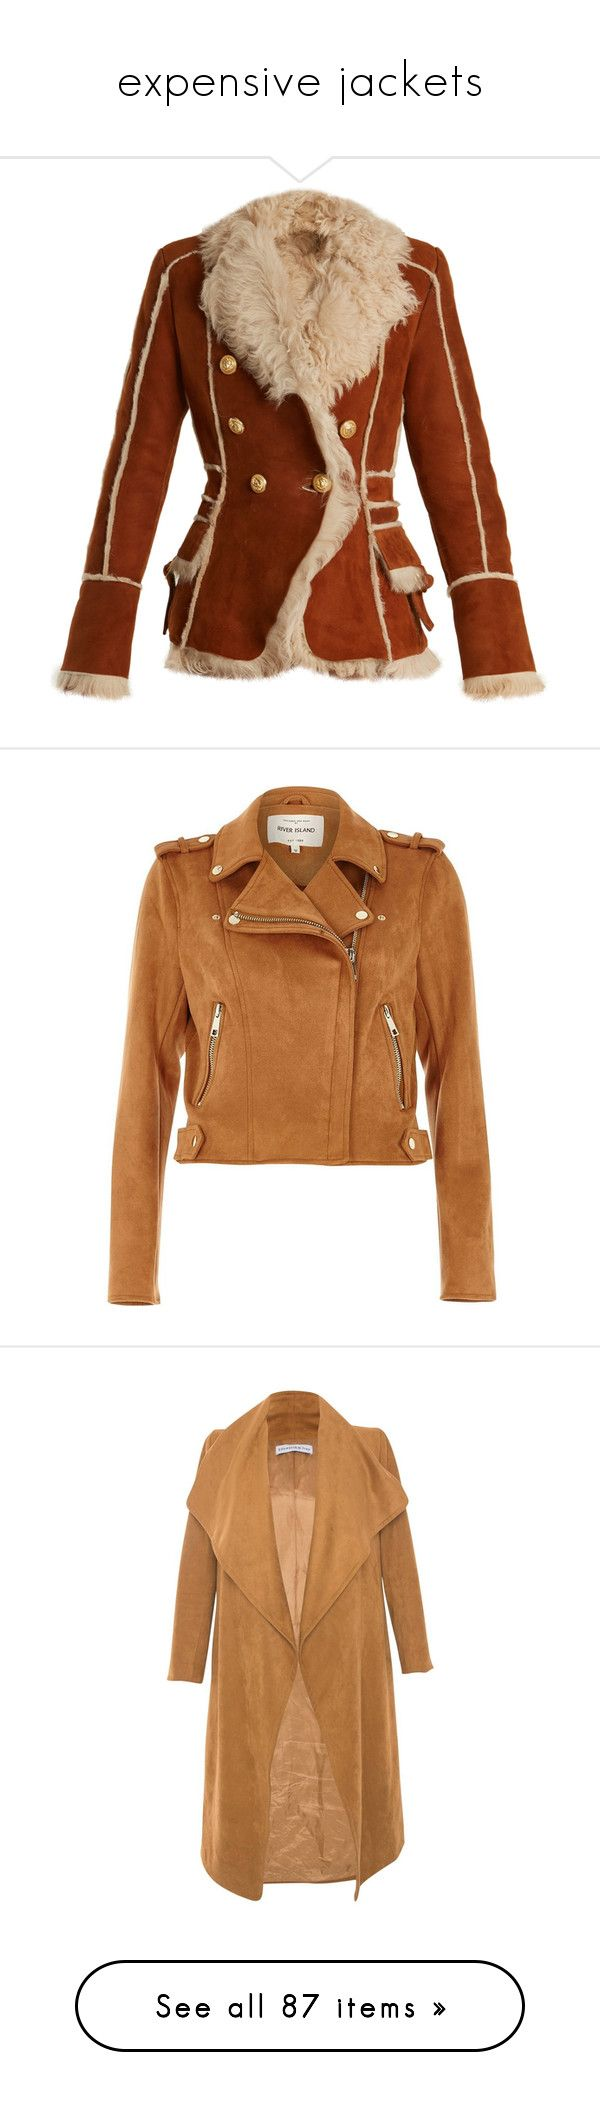 """""""expensive jackets"""" by mrstomlinson974 on Polyvore featuring outerwear, jackets, brown shearling jacket, balmain jacket, balmain blazer, blazer jacket, brown jacket, river island, tops and coats / jackets"""